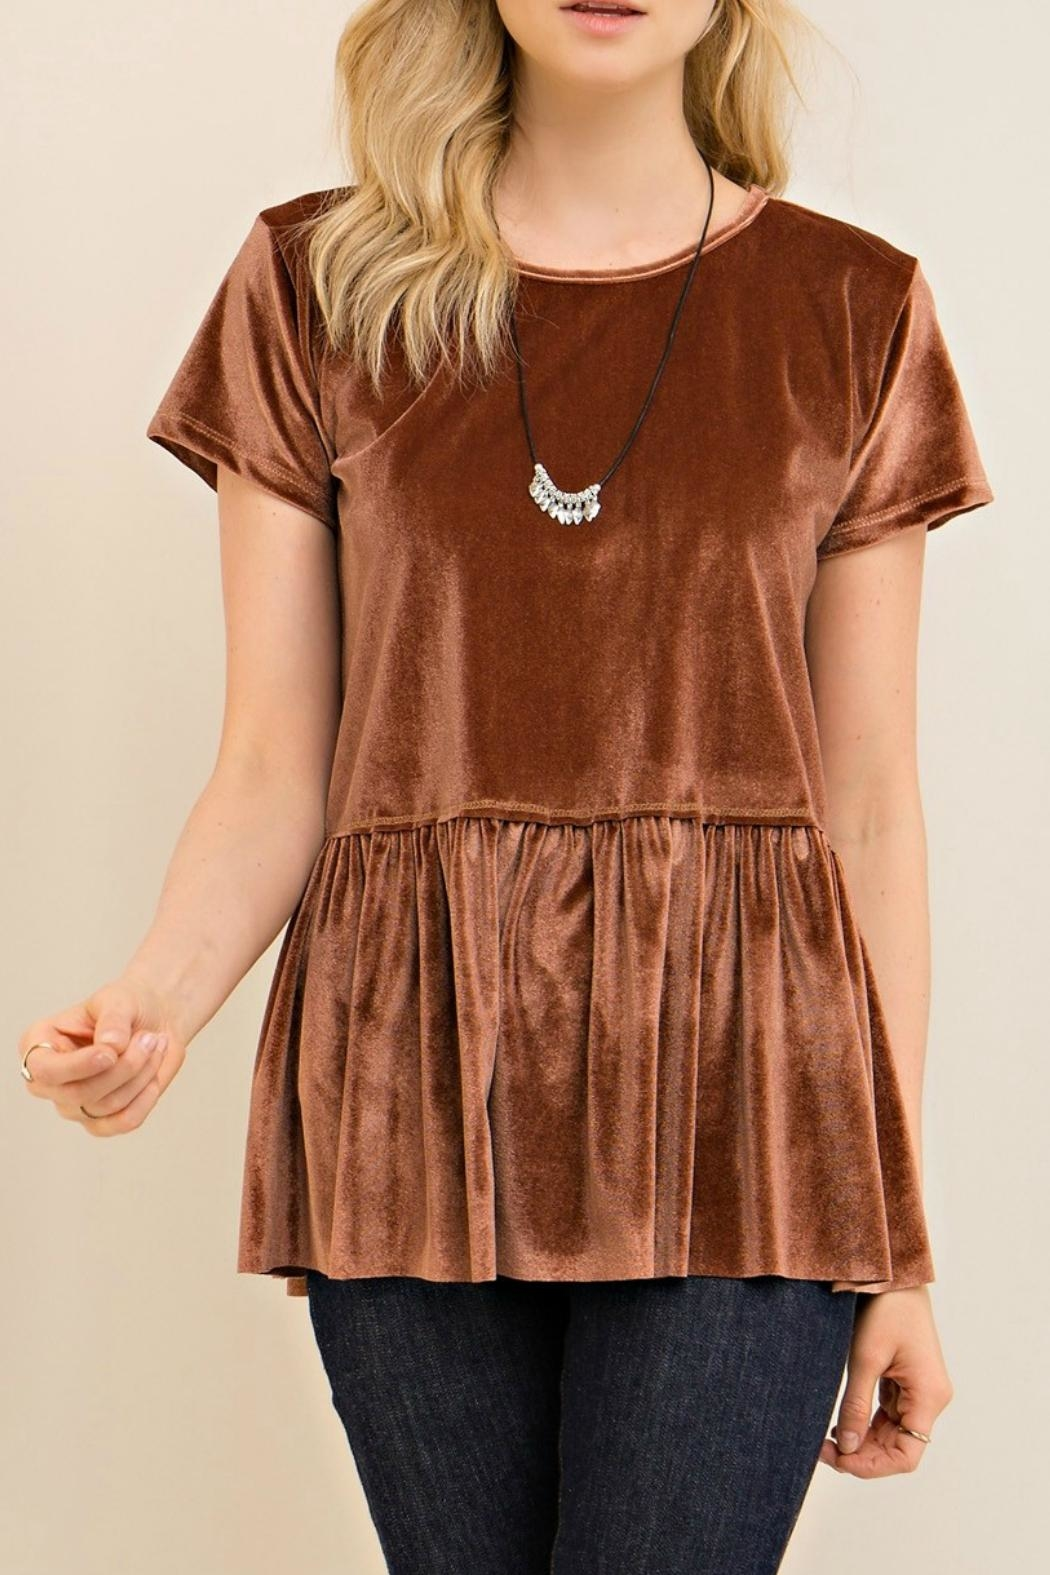 Entro Tan Velvet Top - Front Full Image